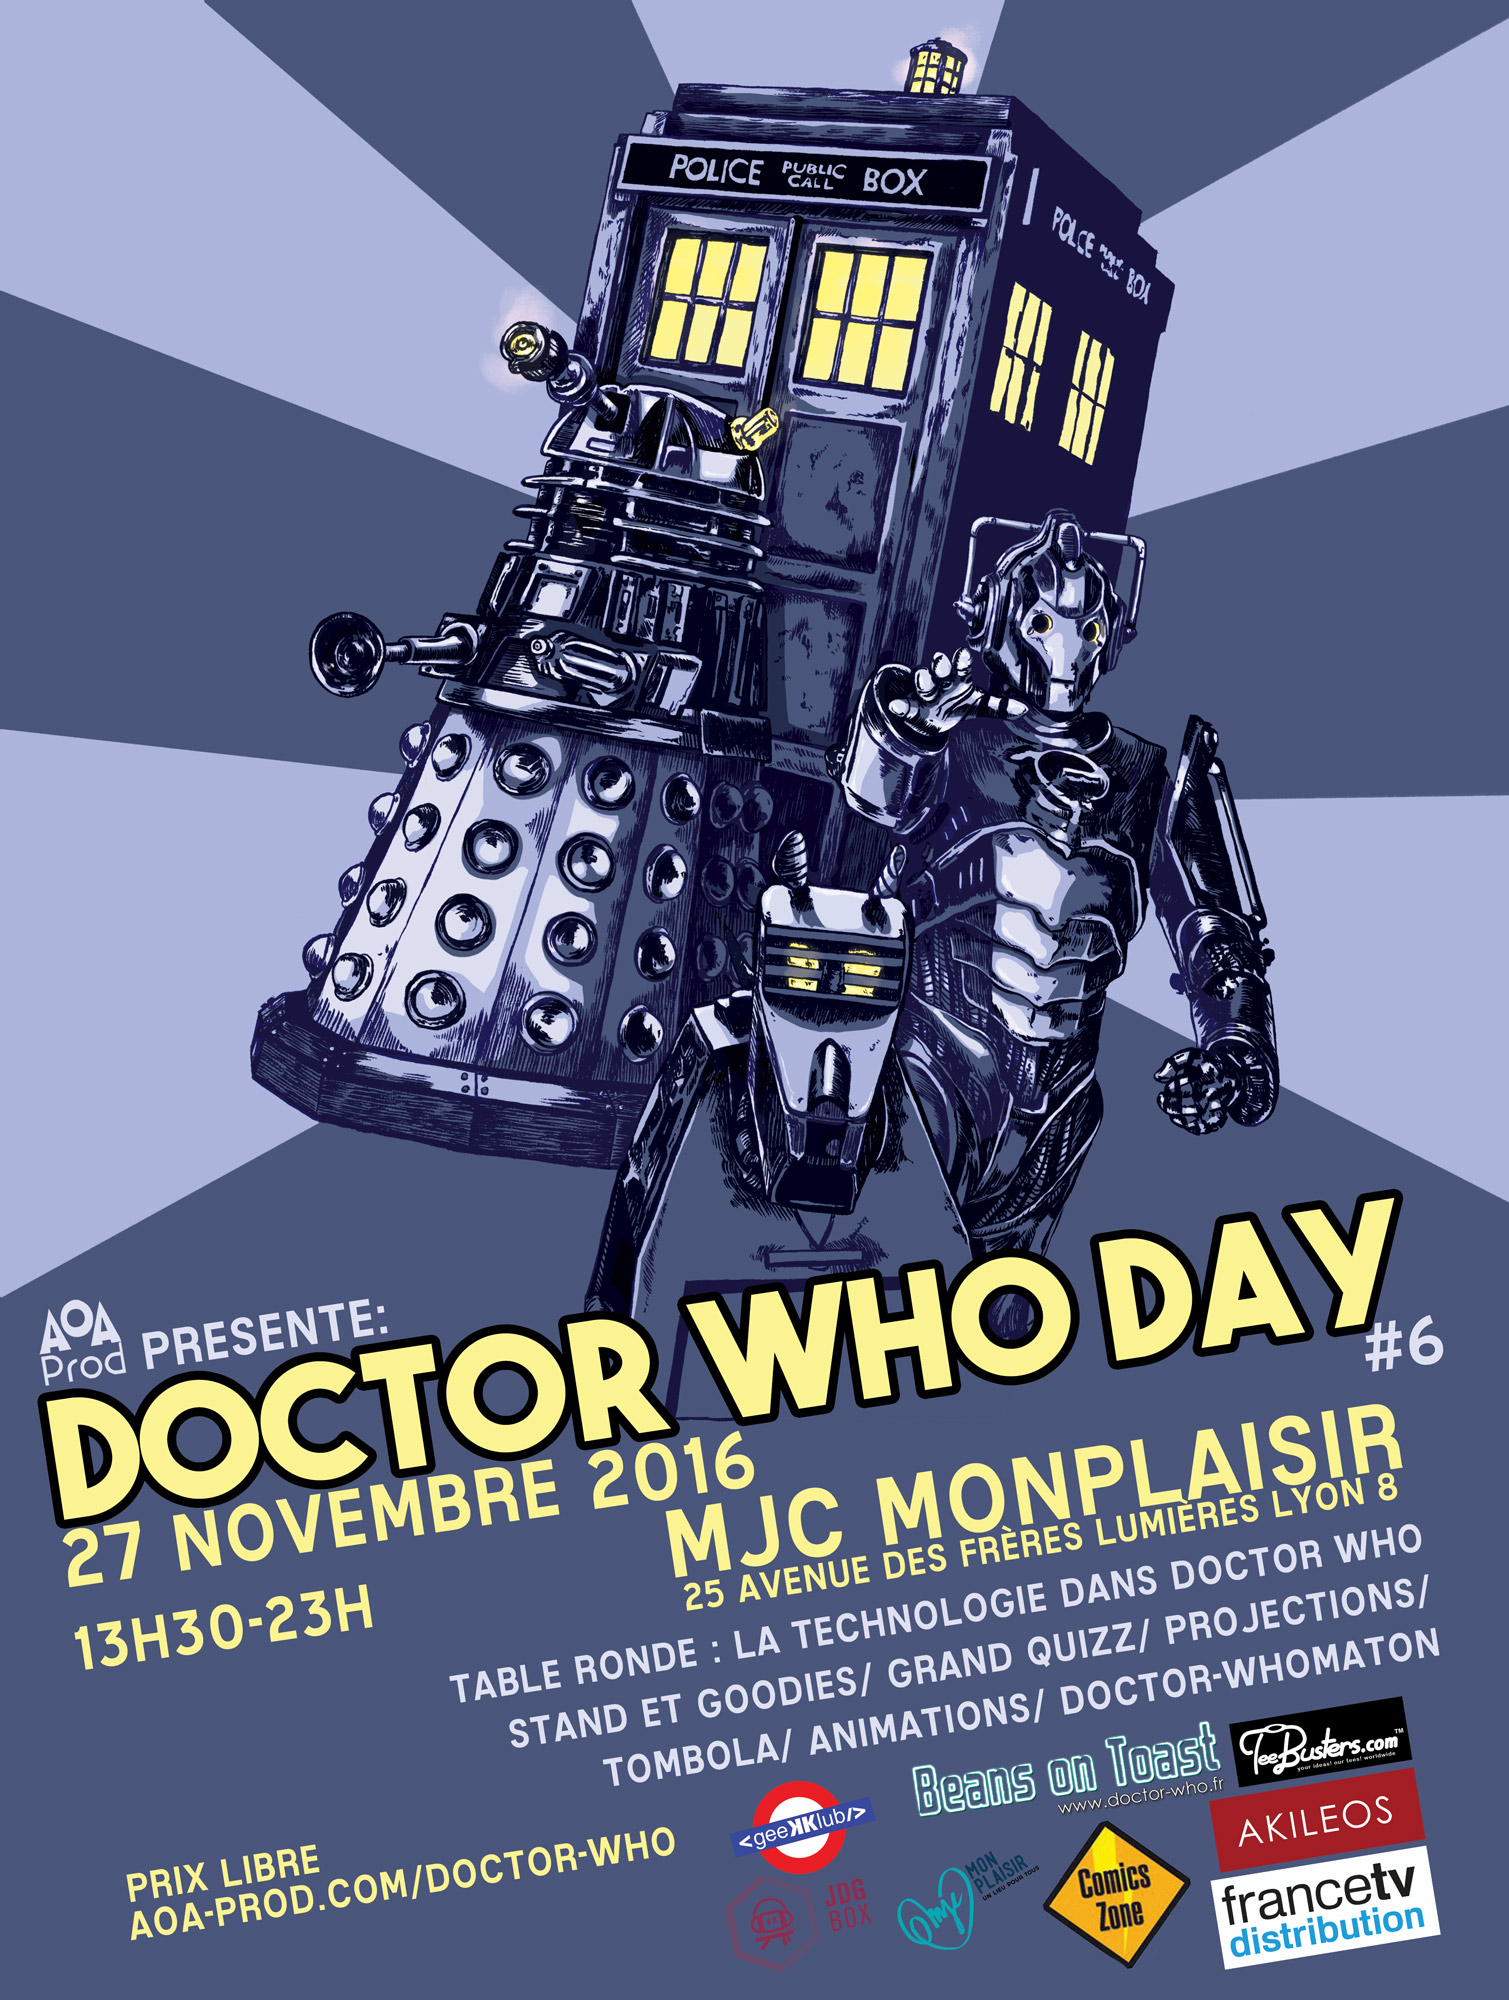 Doctor Who Day 2016